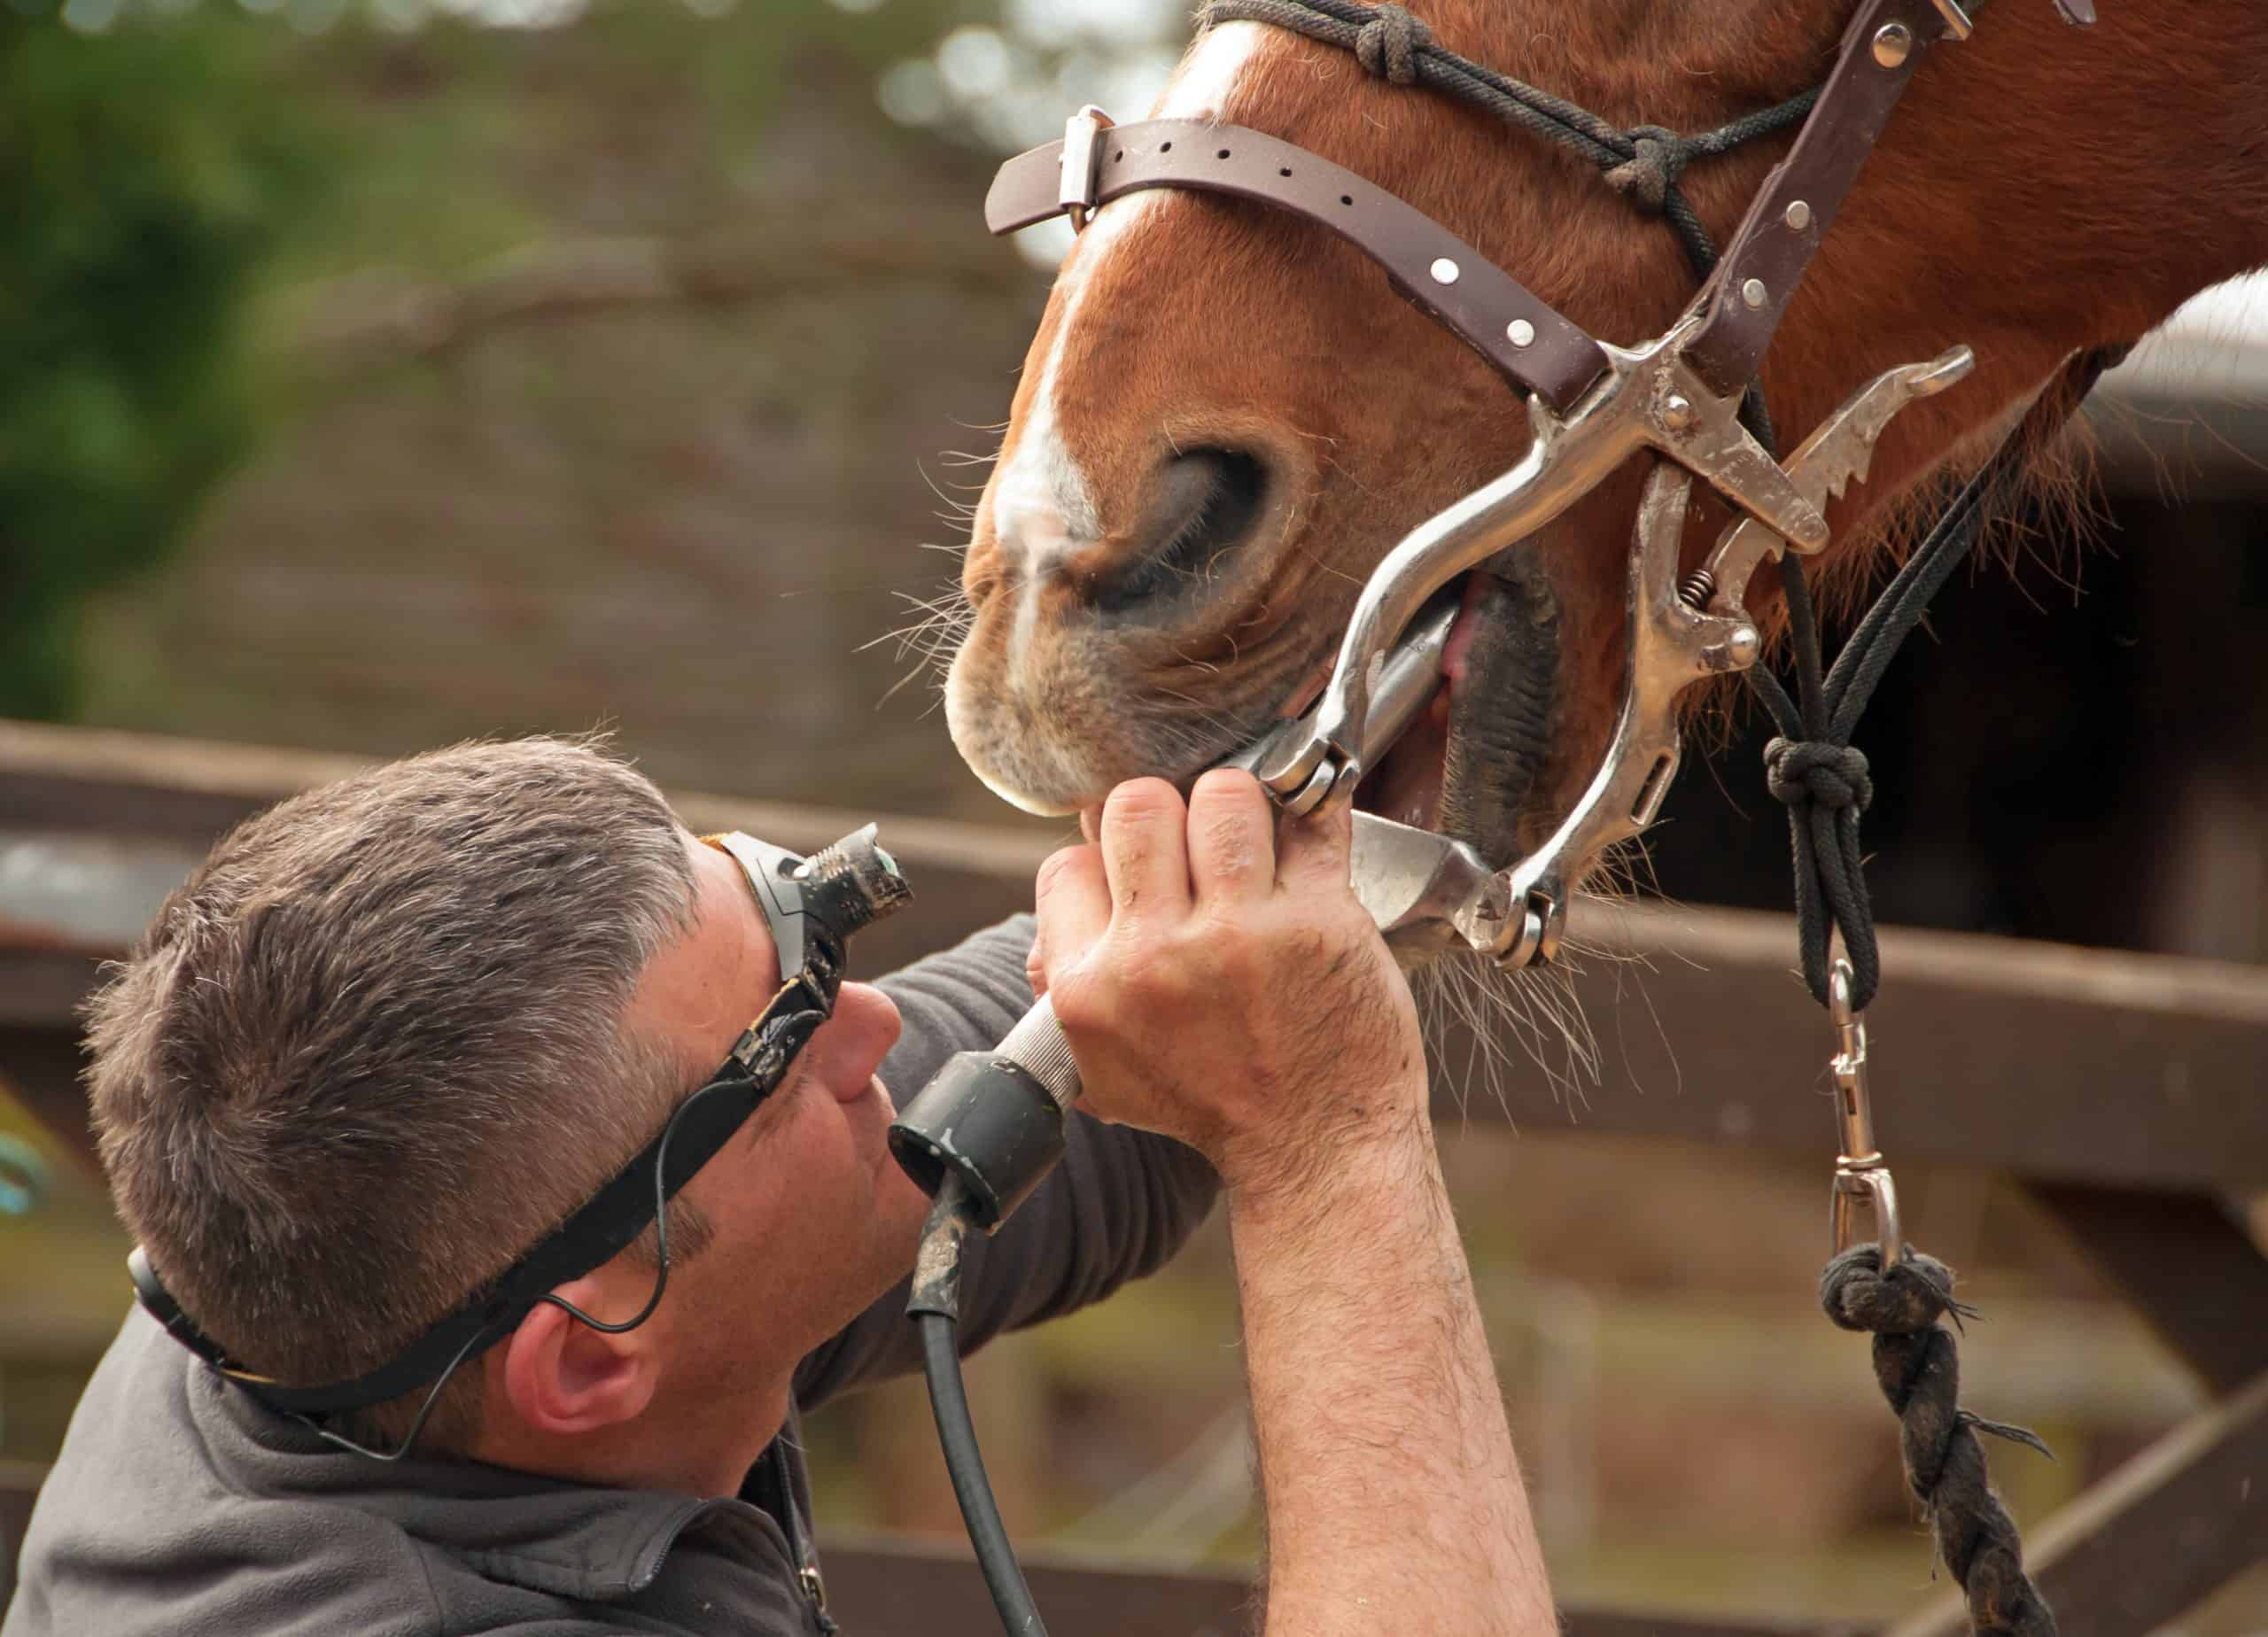 Dental treatment from an equine professional